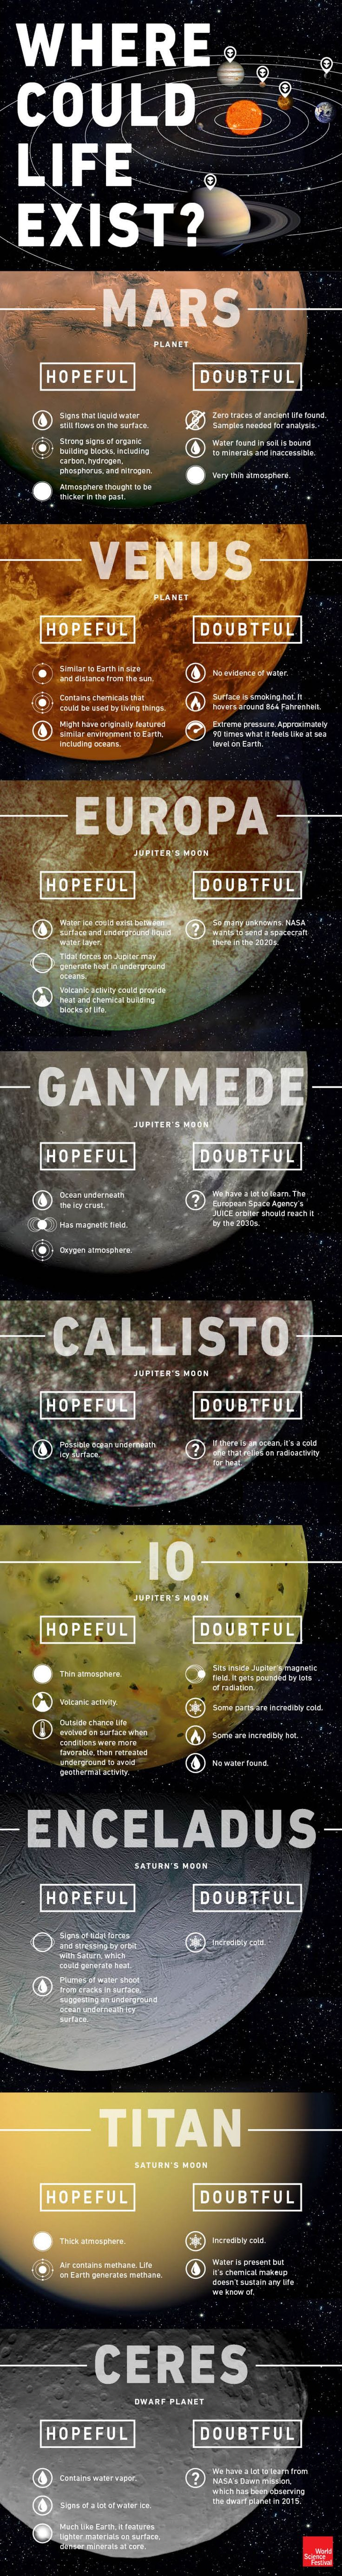 Infographic: Where else could some form of life exist within our solar system?